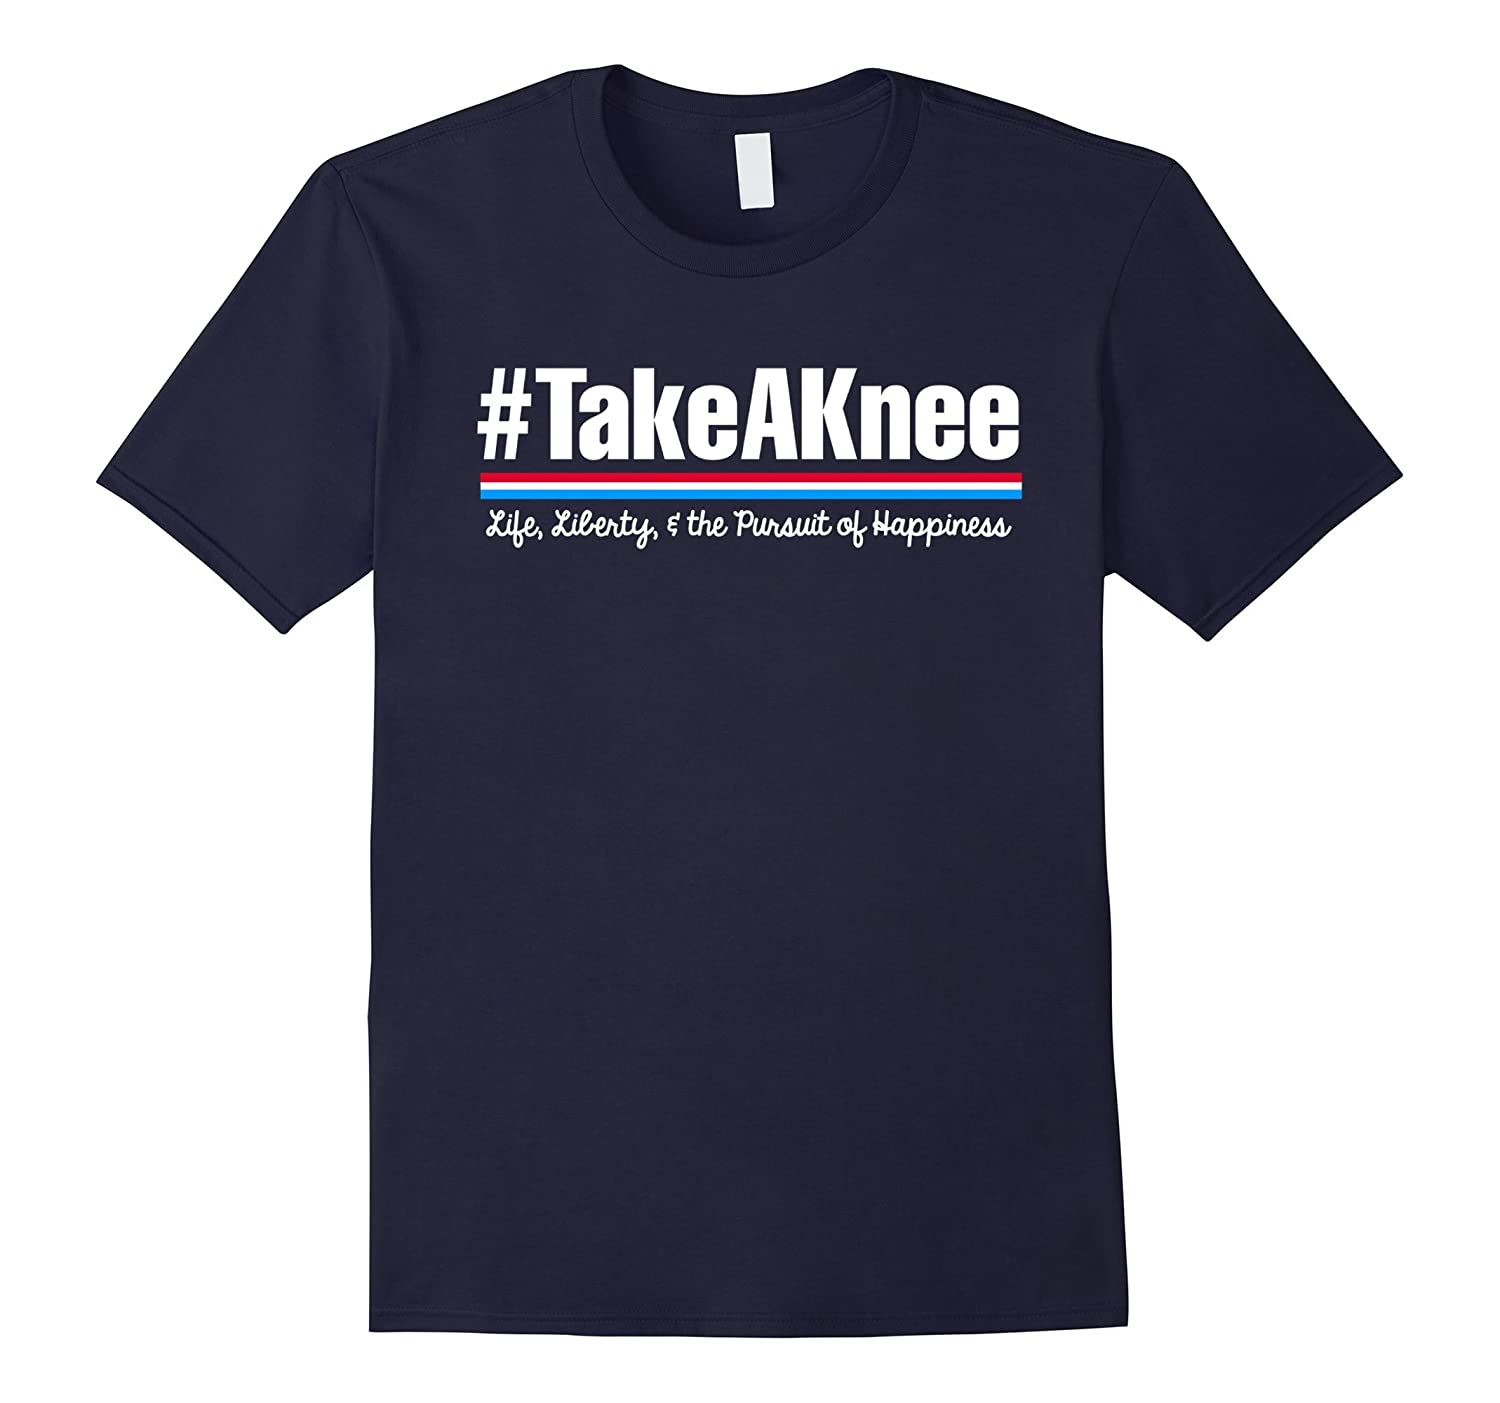 #TakeAKnee Shirt. Take a Knee t-shirt. Stand Up for Rights.-BN